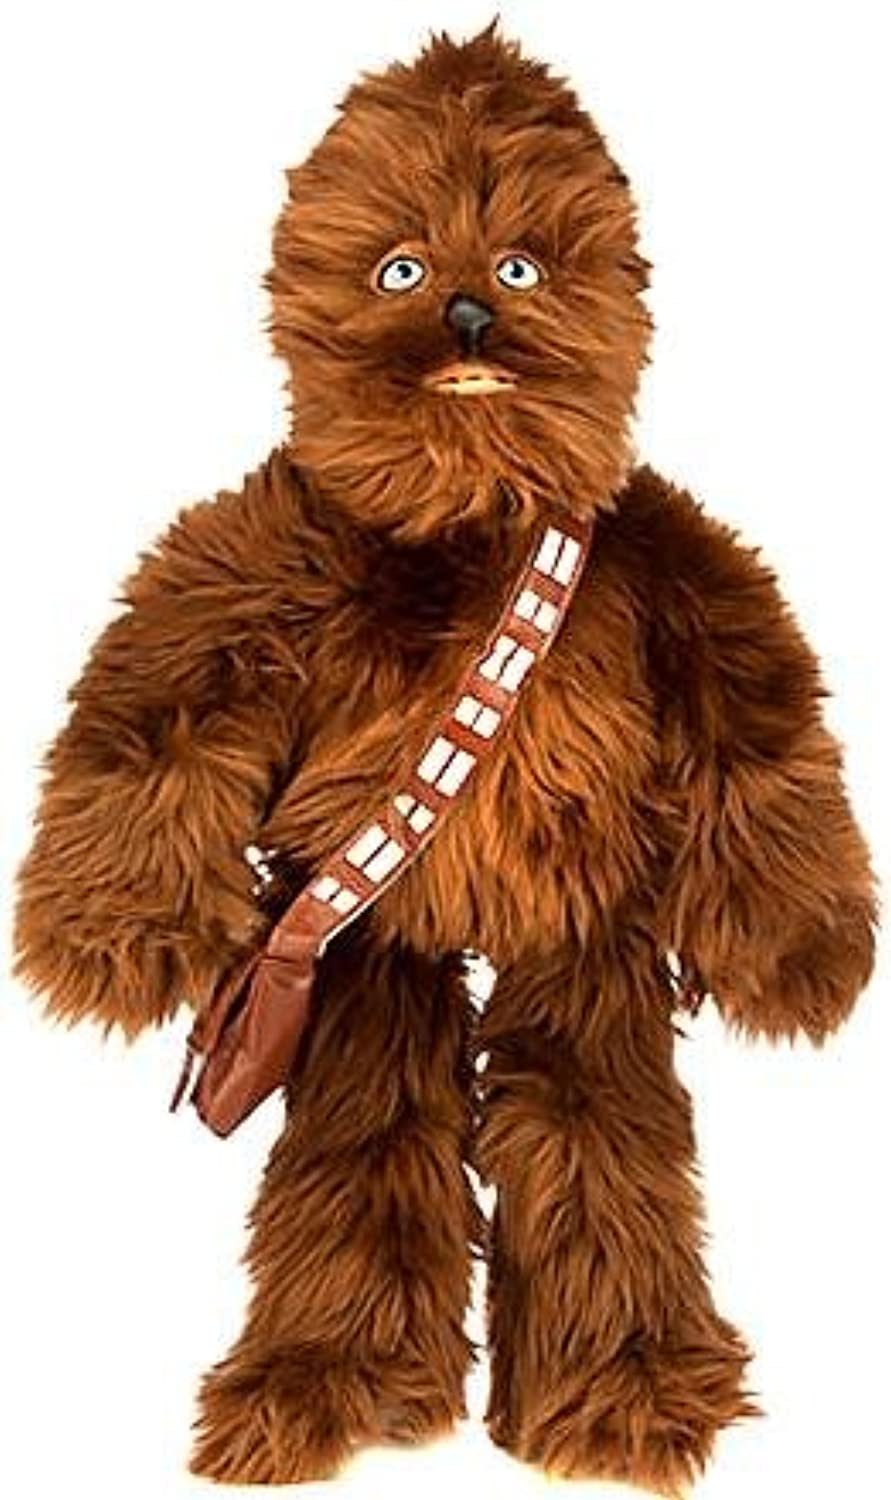 Disney Chewbacca Plush - Star Wars - Medium - 19'' by Disney